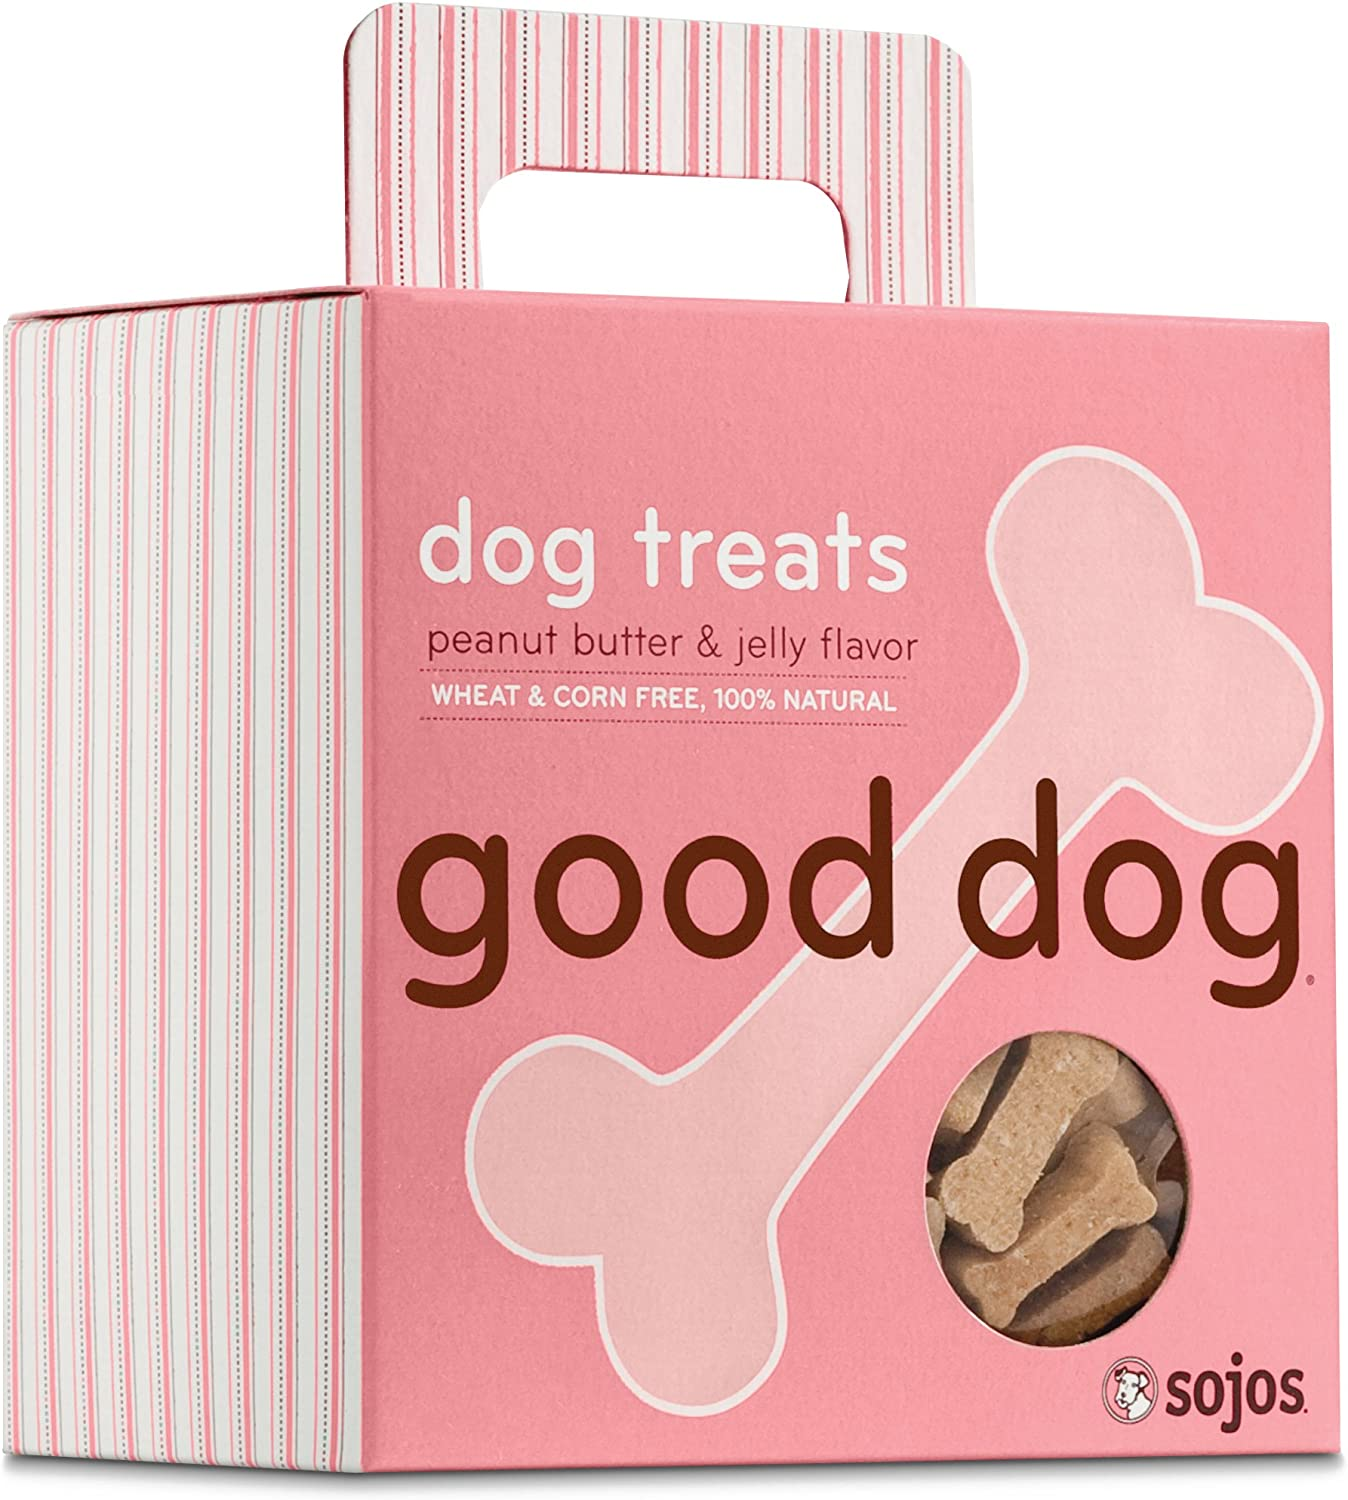 Sojos Good Max Direct stock discount 64% OFF Dog Crunchy Natural Peanut Treats Jelly Butter